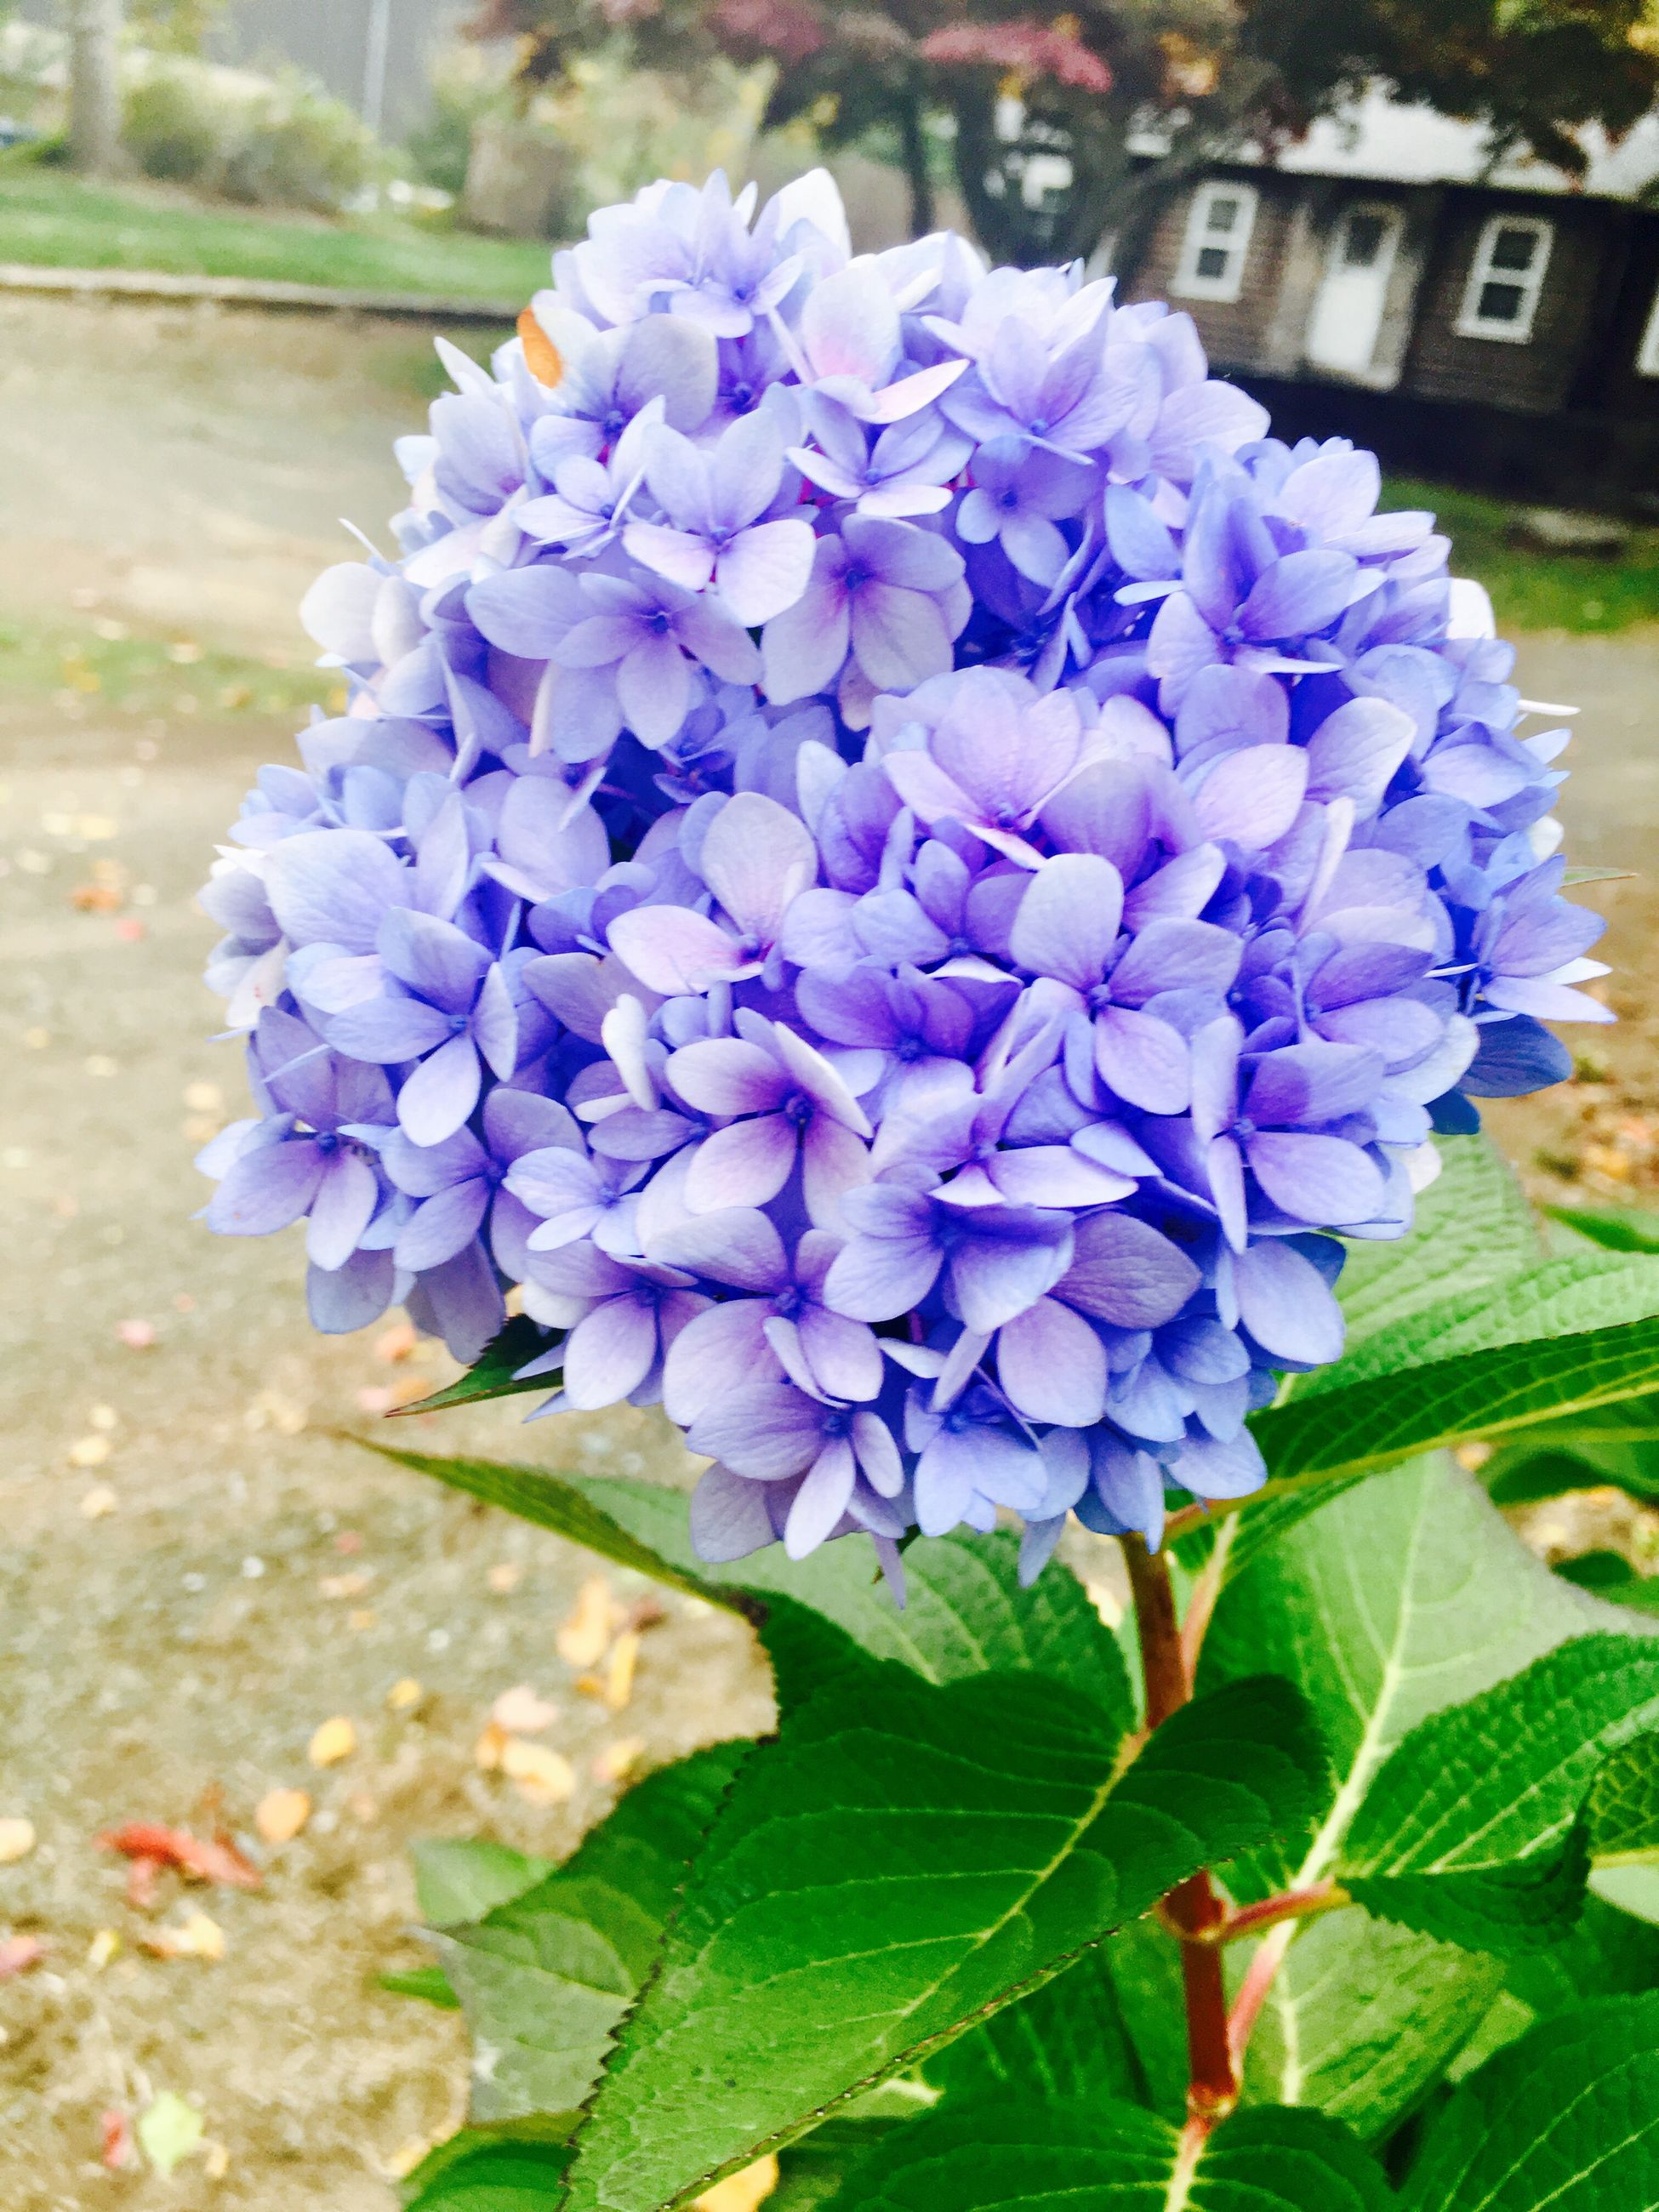 flower, freshness, purple, fragility, close-up, petal, springtime, building exterior, beauty in nature, blue, growth, in bloom, nature, day, blossom, outdoors, bunch of flowers, focus on foreground, flower head, no people, botany, growing